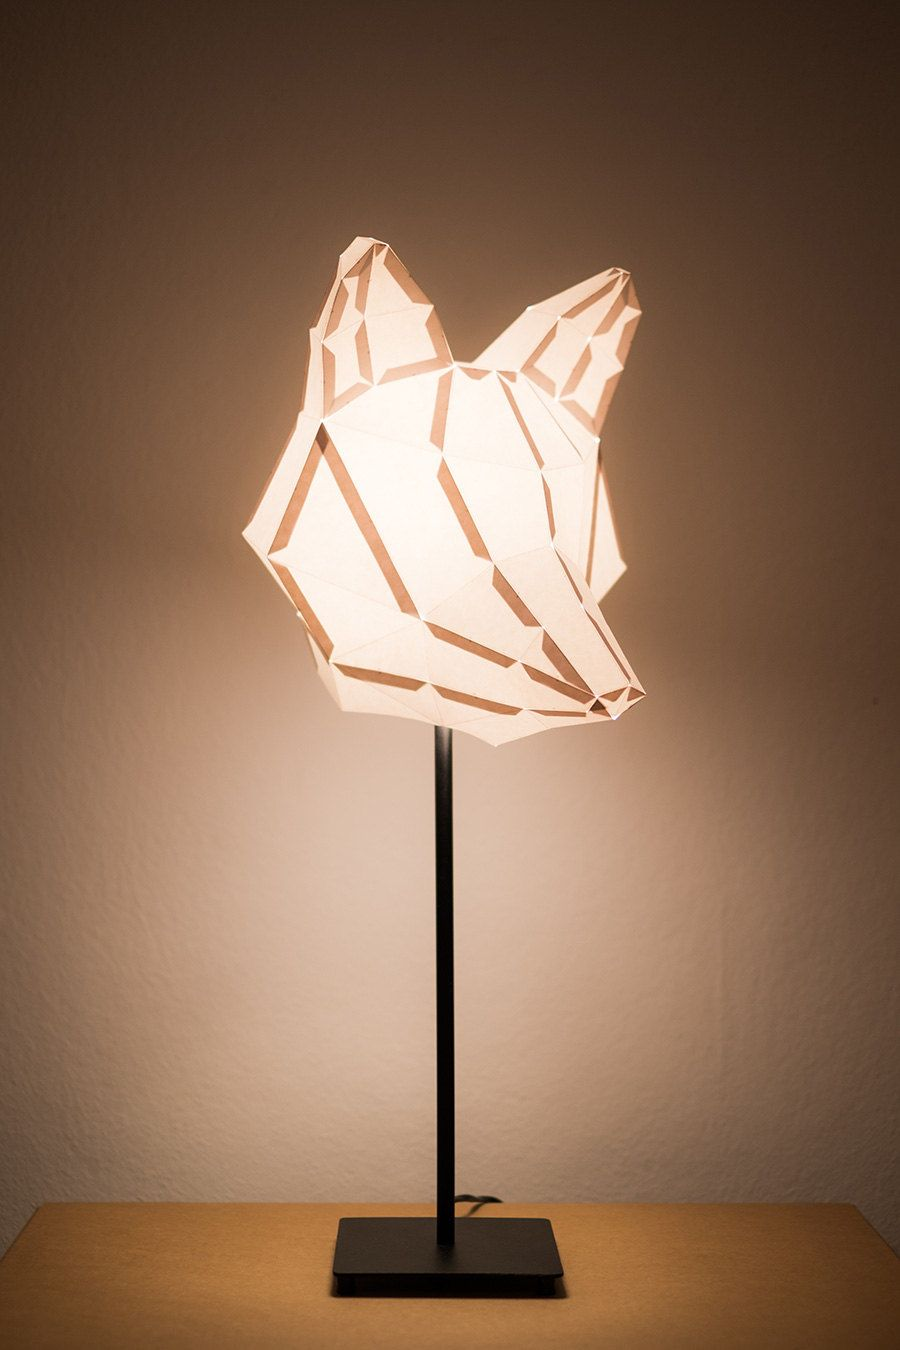 Fox medium do it yourself paper lamp shade paper lampshade mostlikely diy lampshades maik perfahl and wolfgang list fox head lampshade solutioingenieria Choice Image